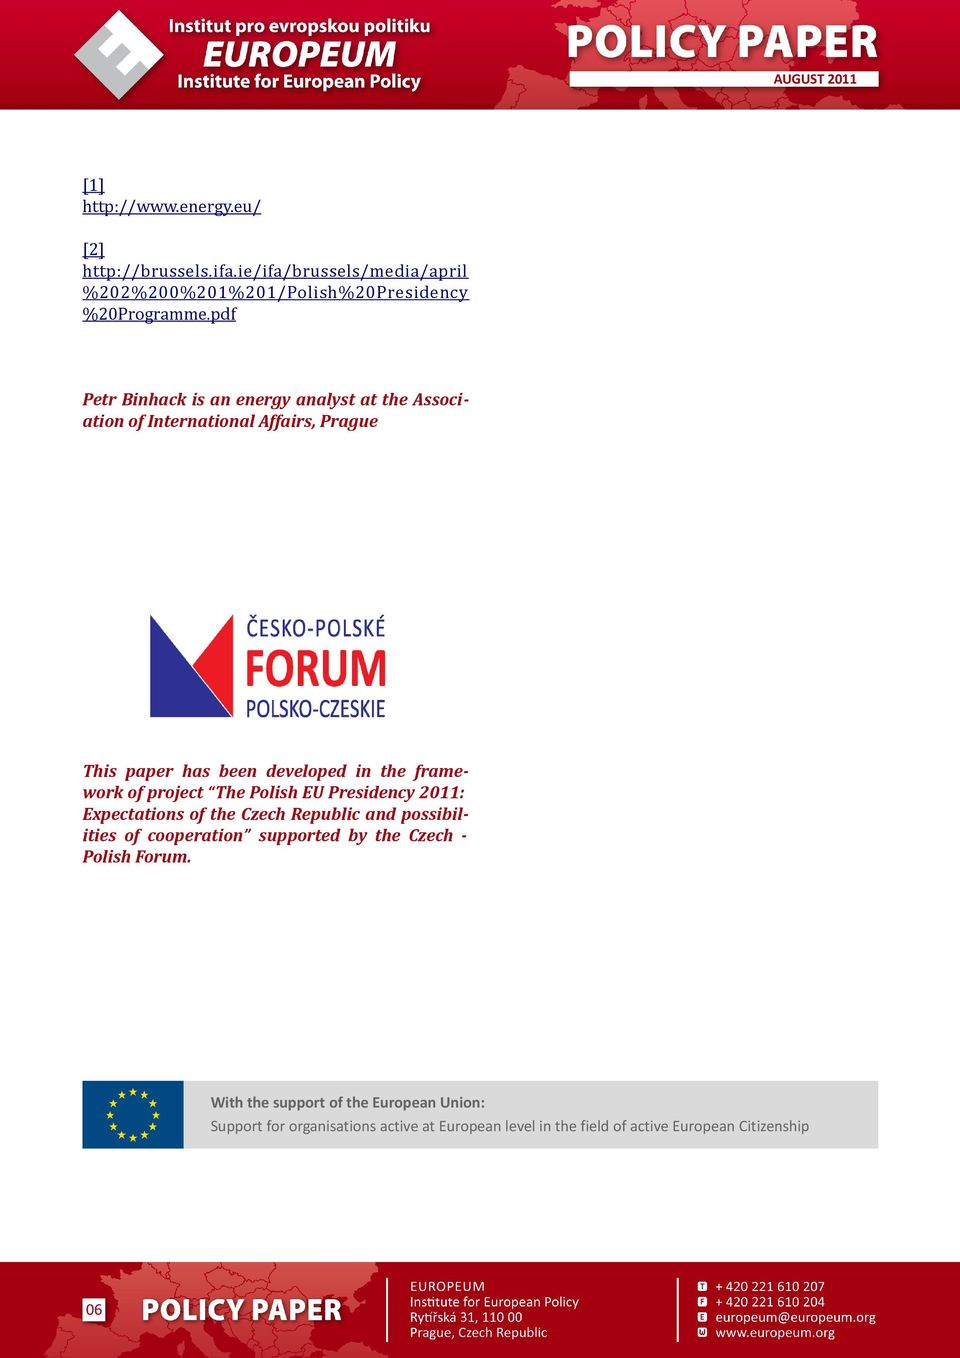 of project The Polish EU Presidency 2011: Expectations of the Czech Republic and possibilities of cooperation supported by the Czech -